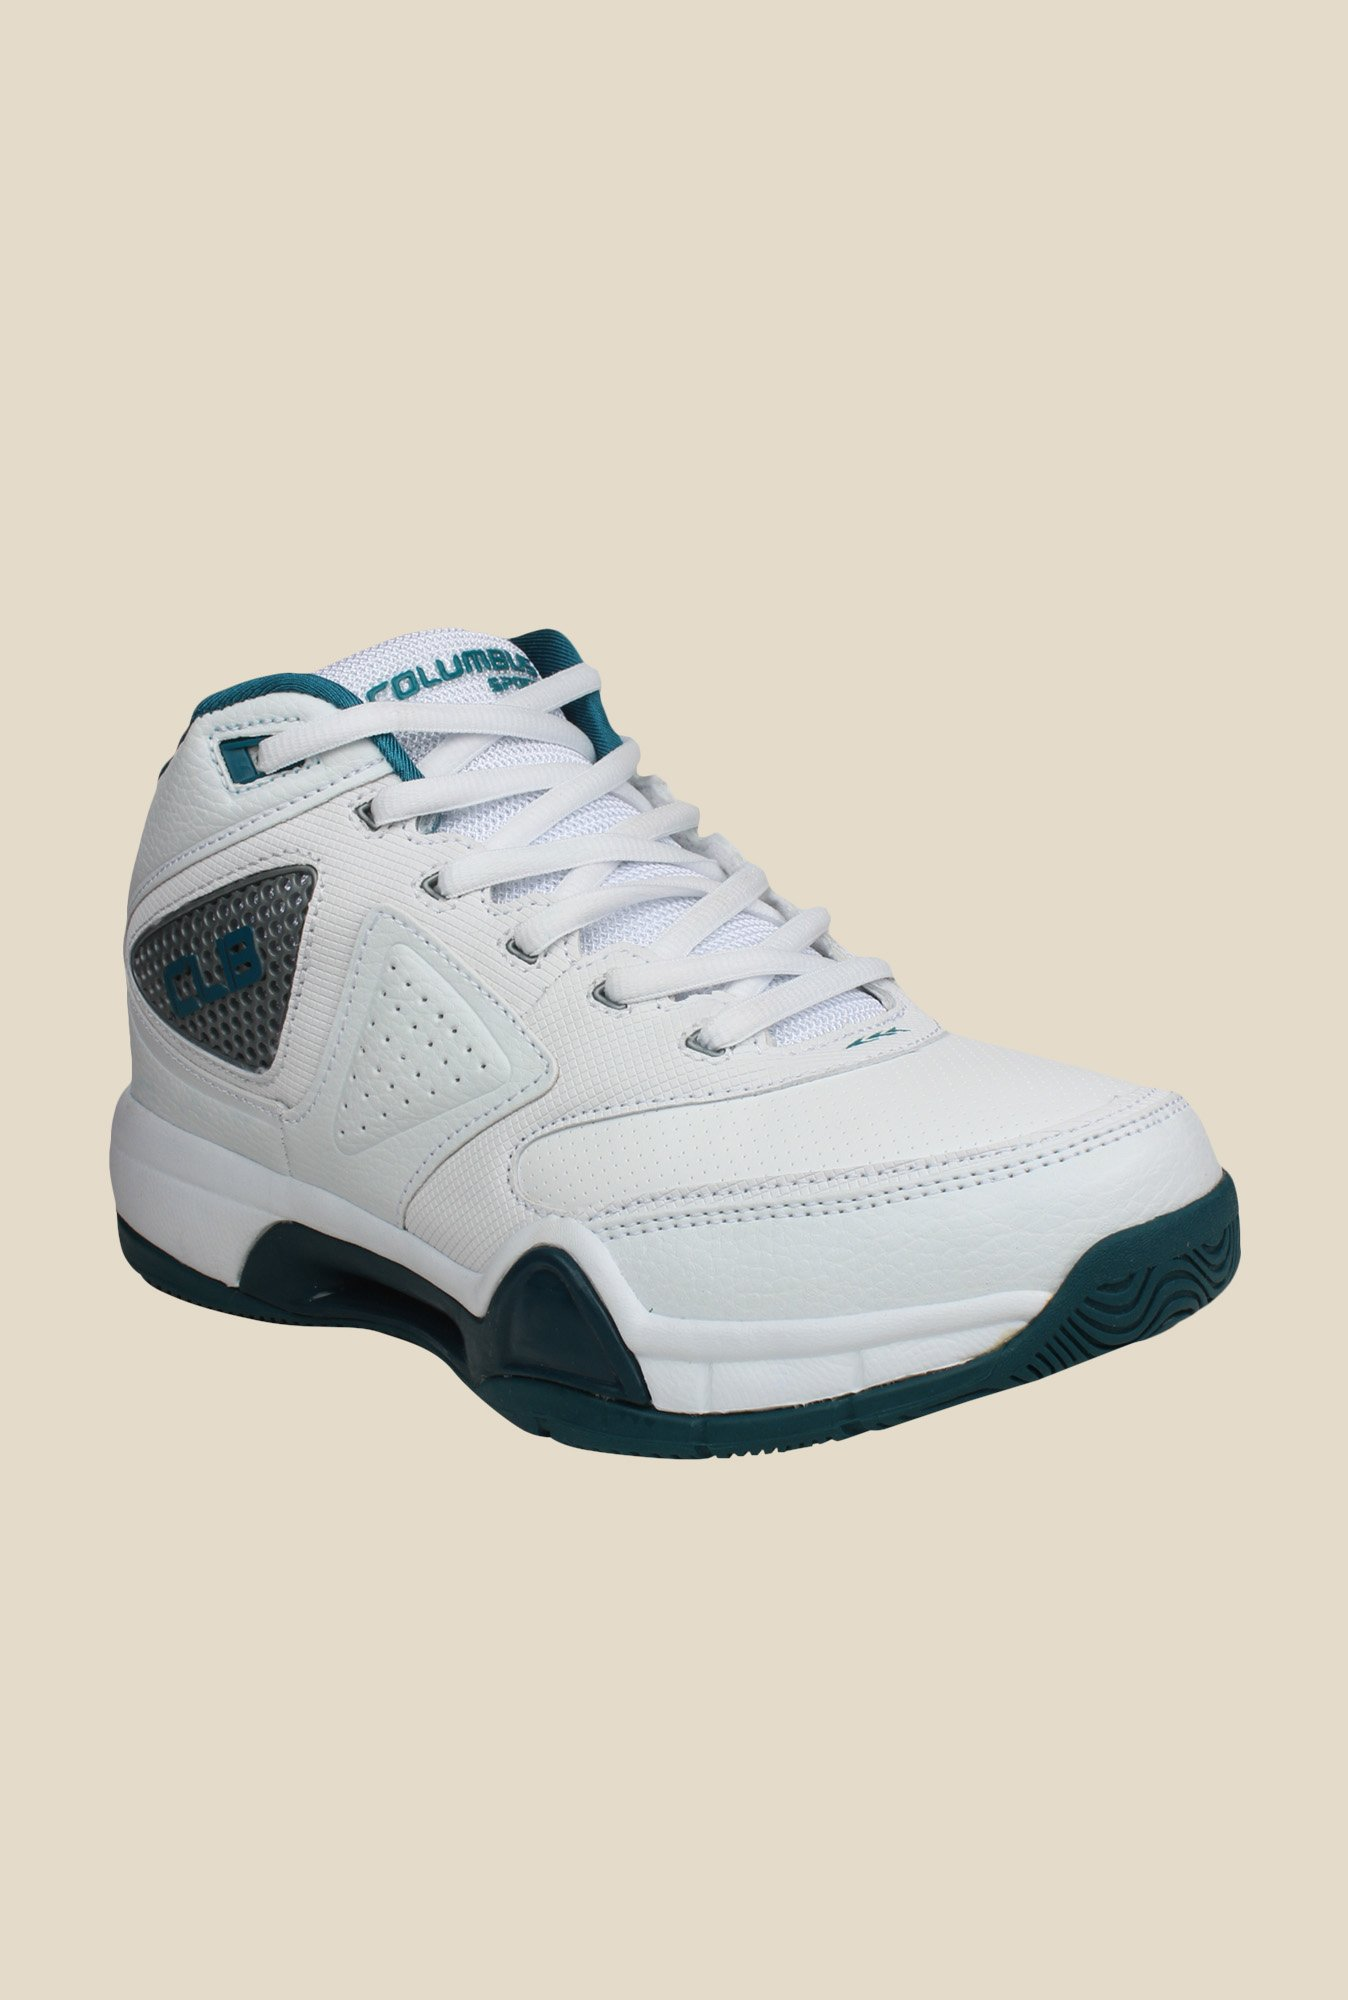 Columbus Charger White & Sea Green Training Shoes